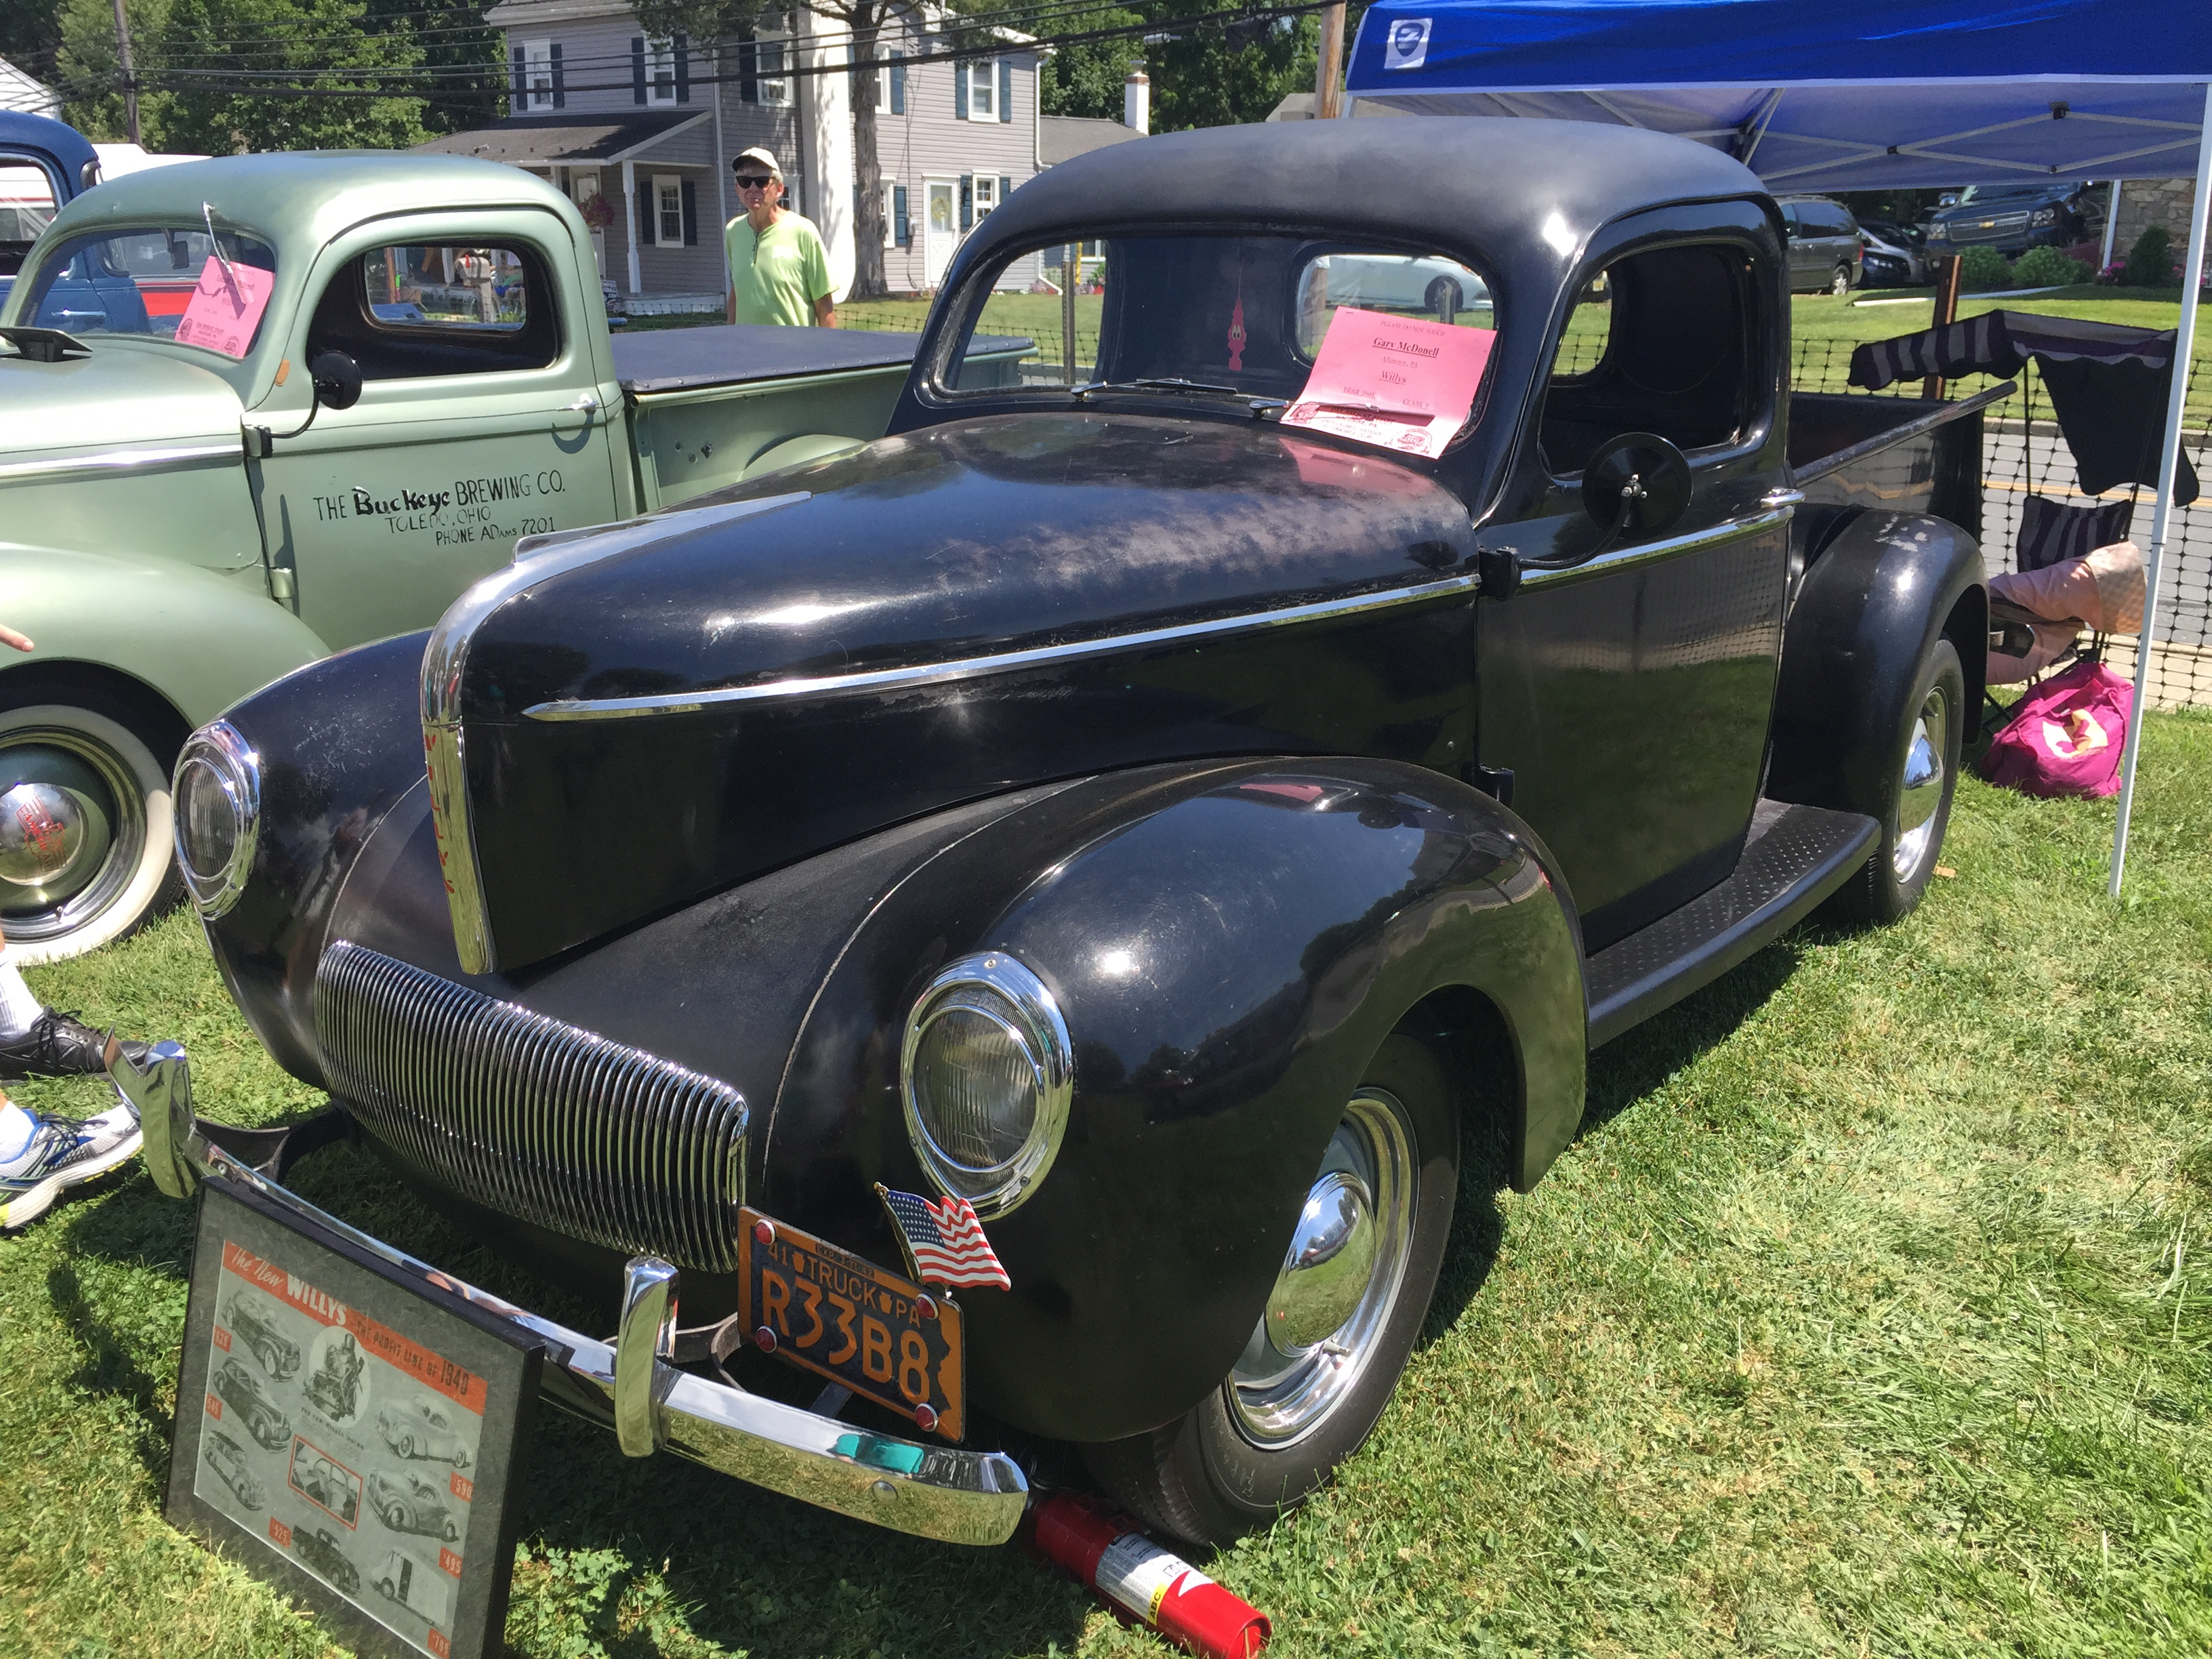 file 1941 willys americar pickup truck at 2015 macungie show 1of3 1948 Willys Pickup Truck file 1941 willys americar pickup truck at 2015 macungie show 1of3